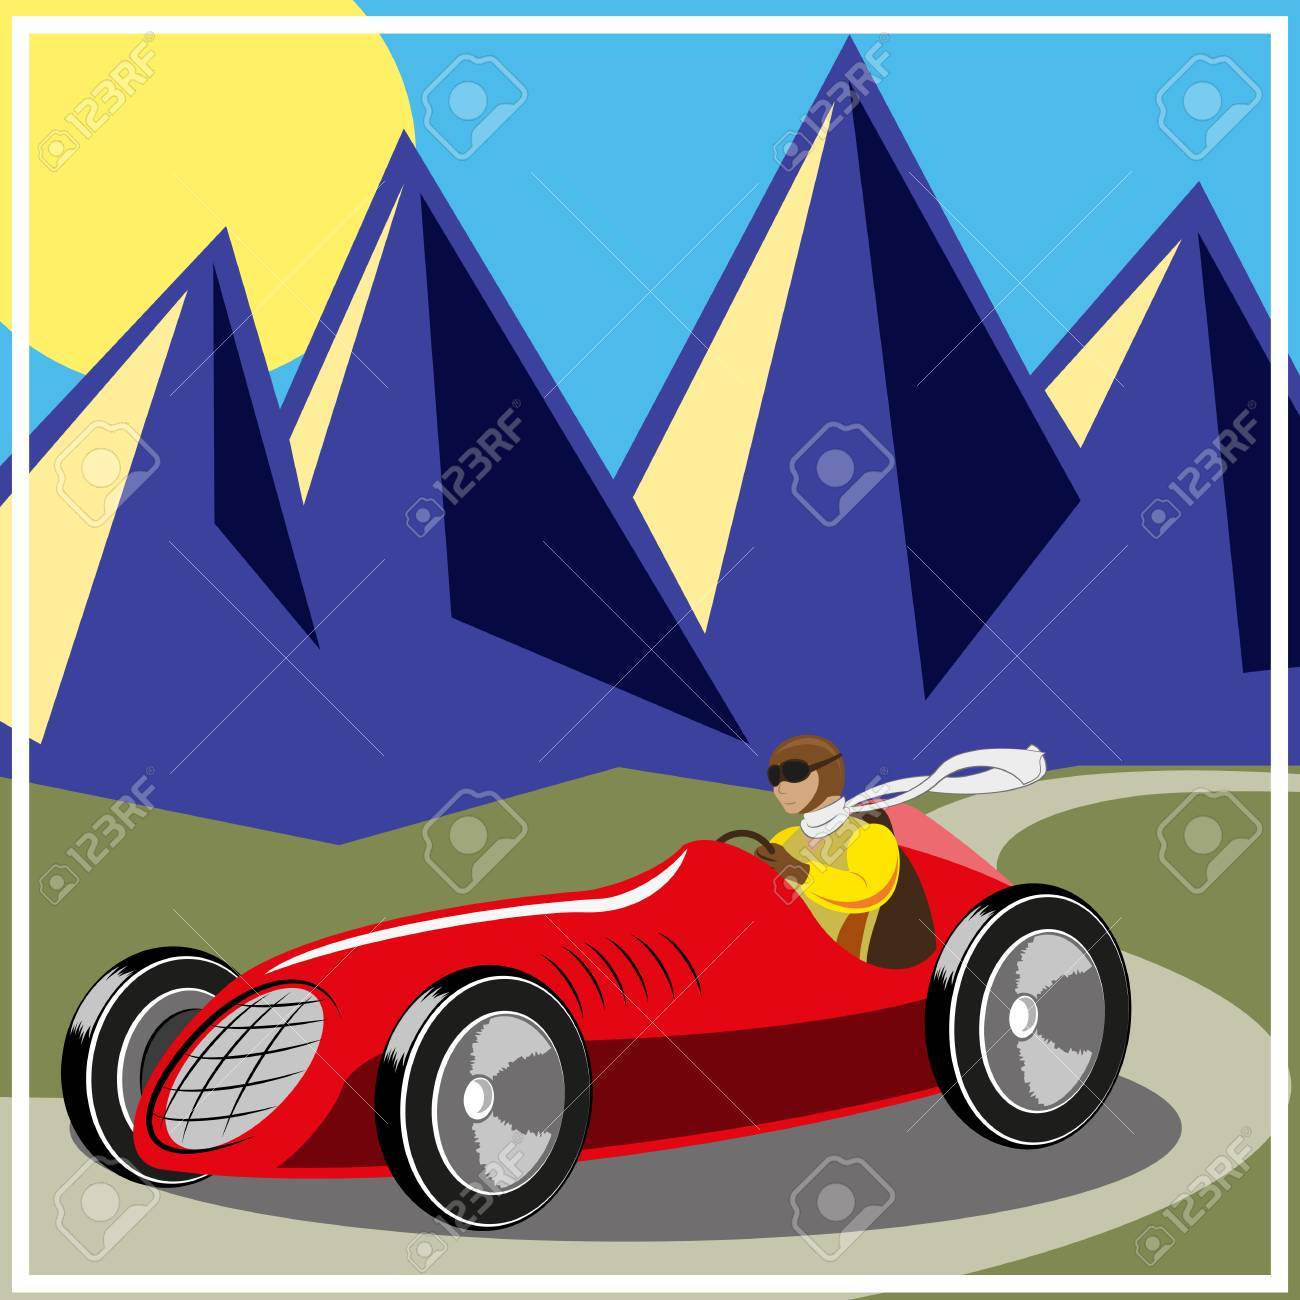 Racer driving old fast race car, vector illustration Stock Vector - 27712863